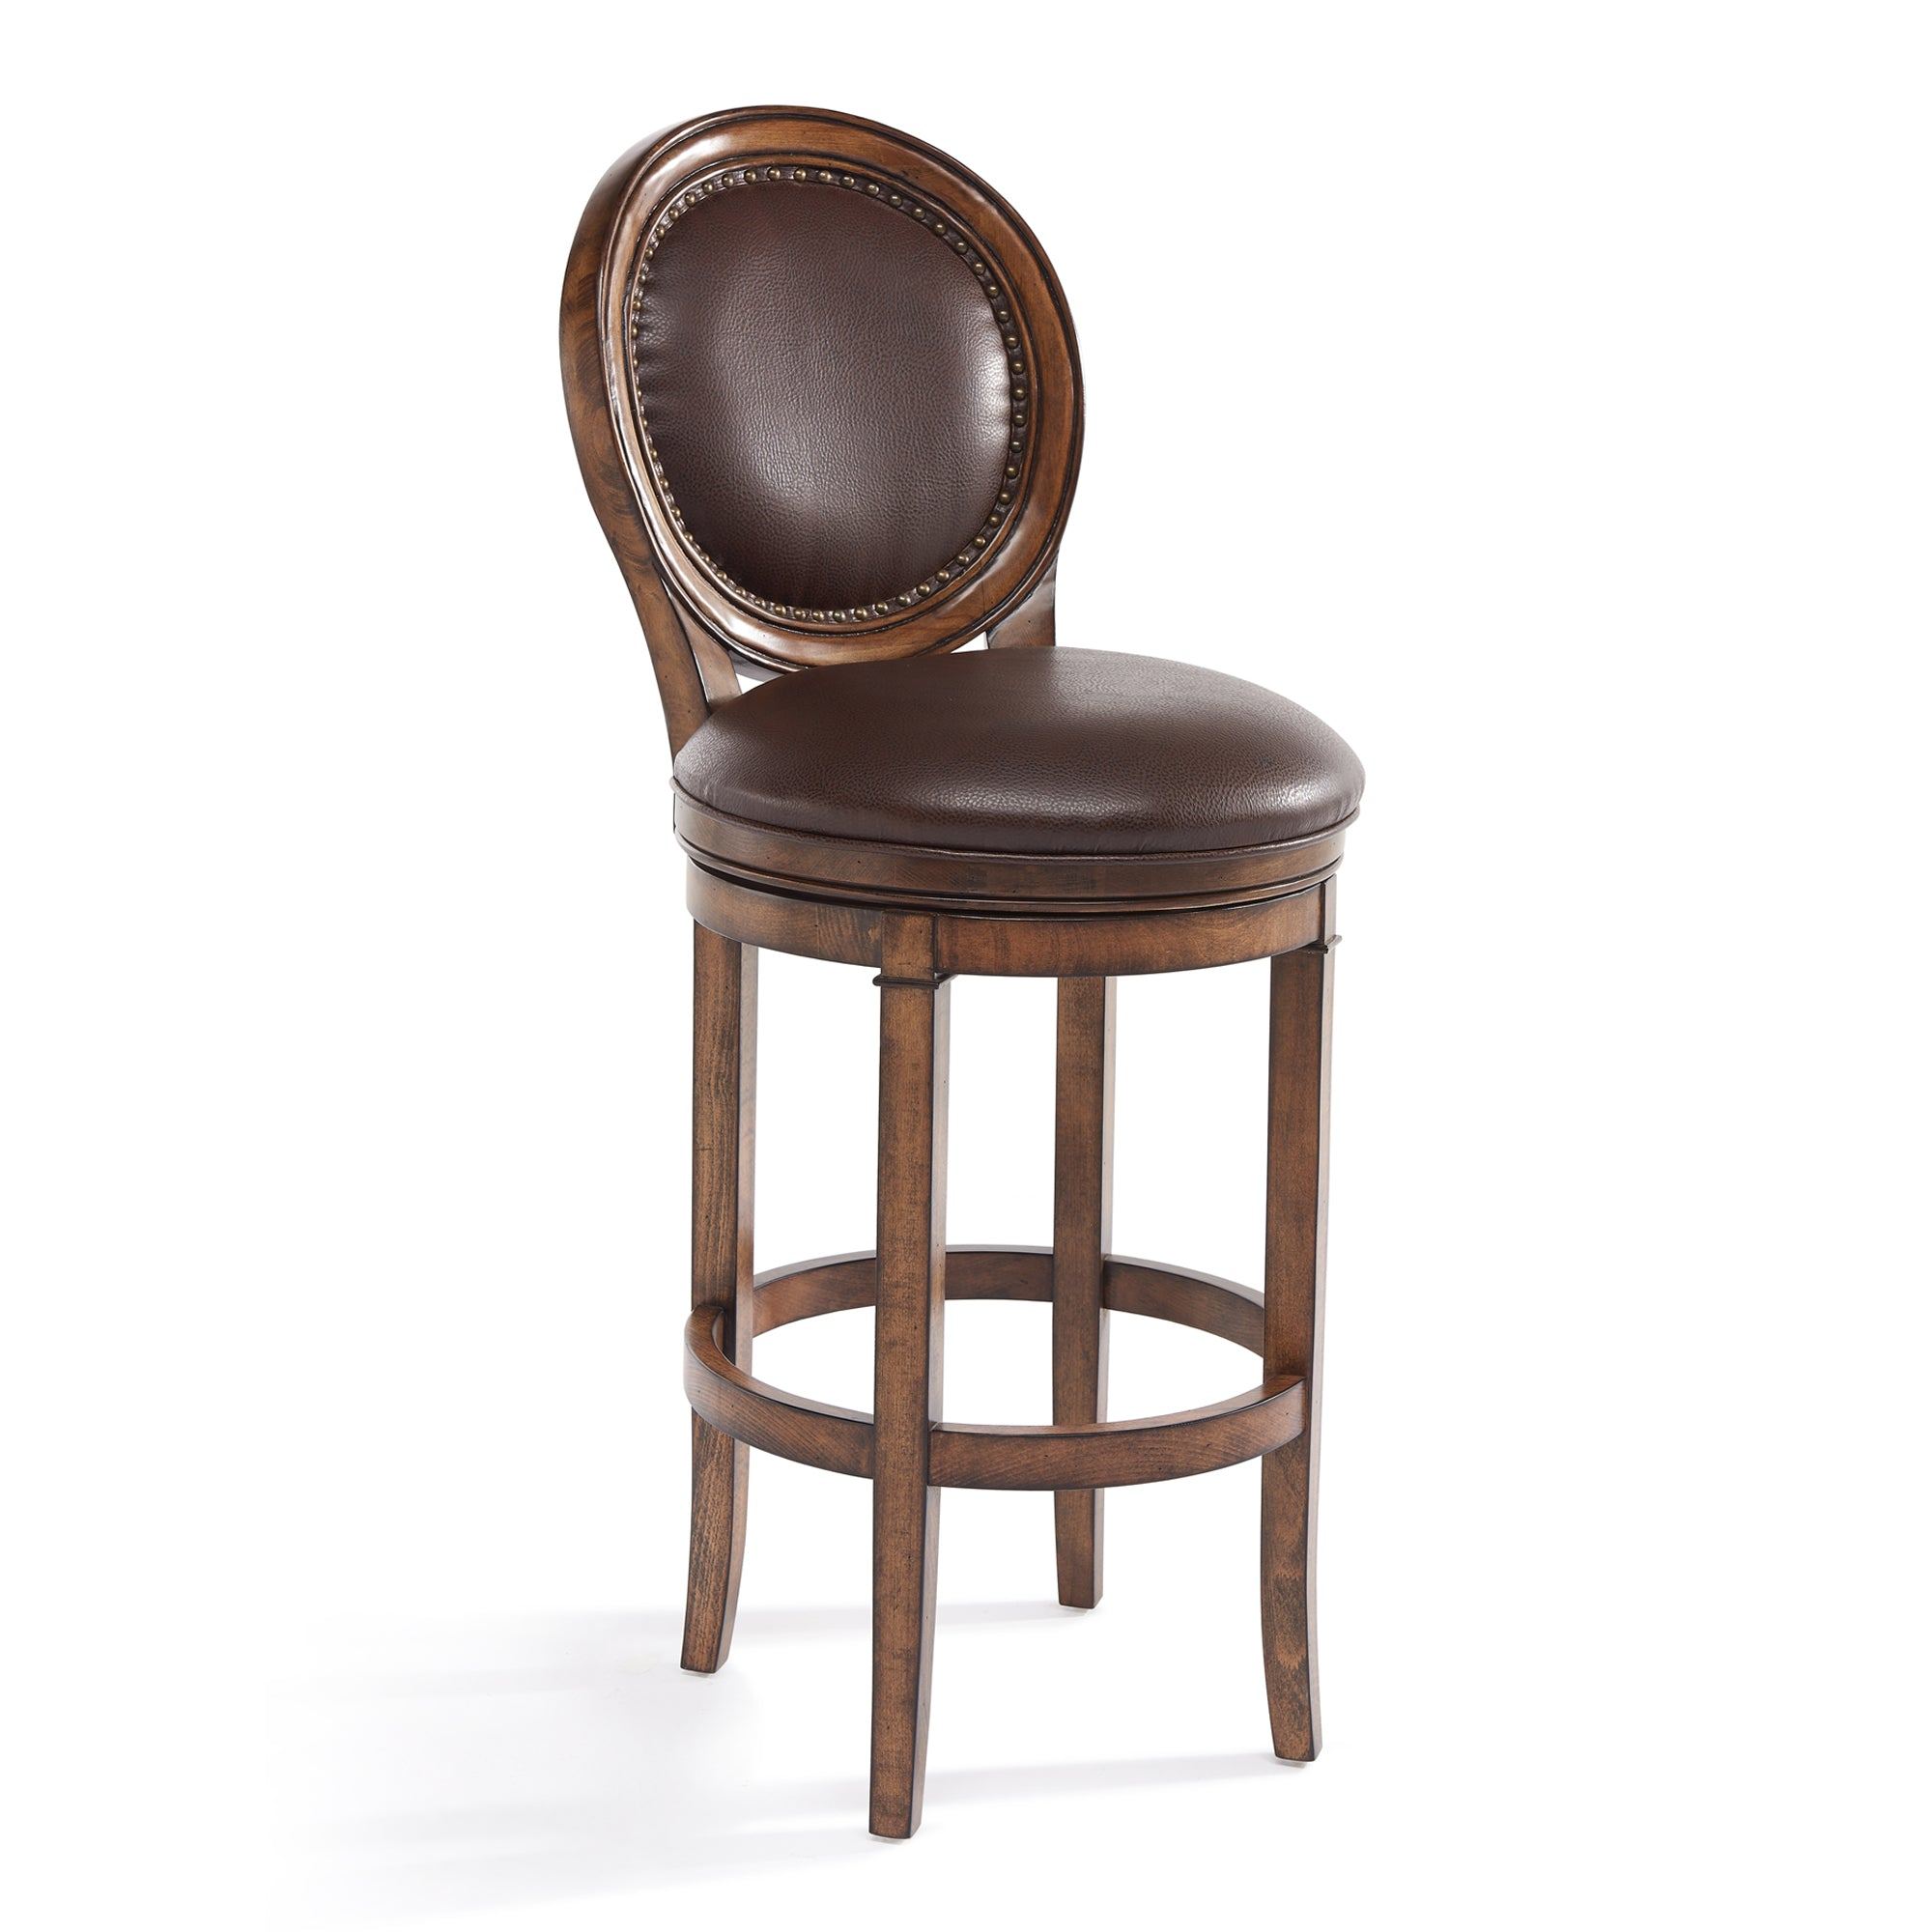 Armen Living Counter Height Swivel Wood Barstool Chestnut Kahlua Faux Leather Greece